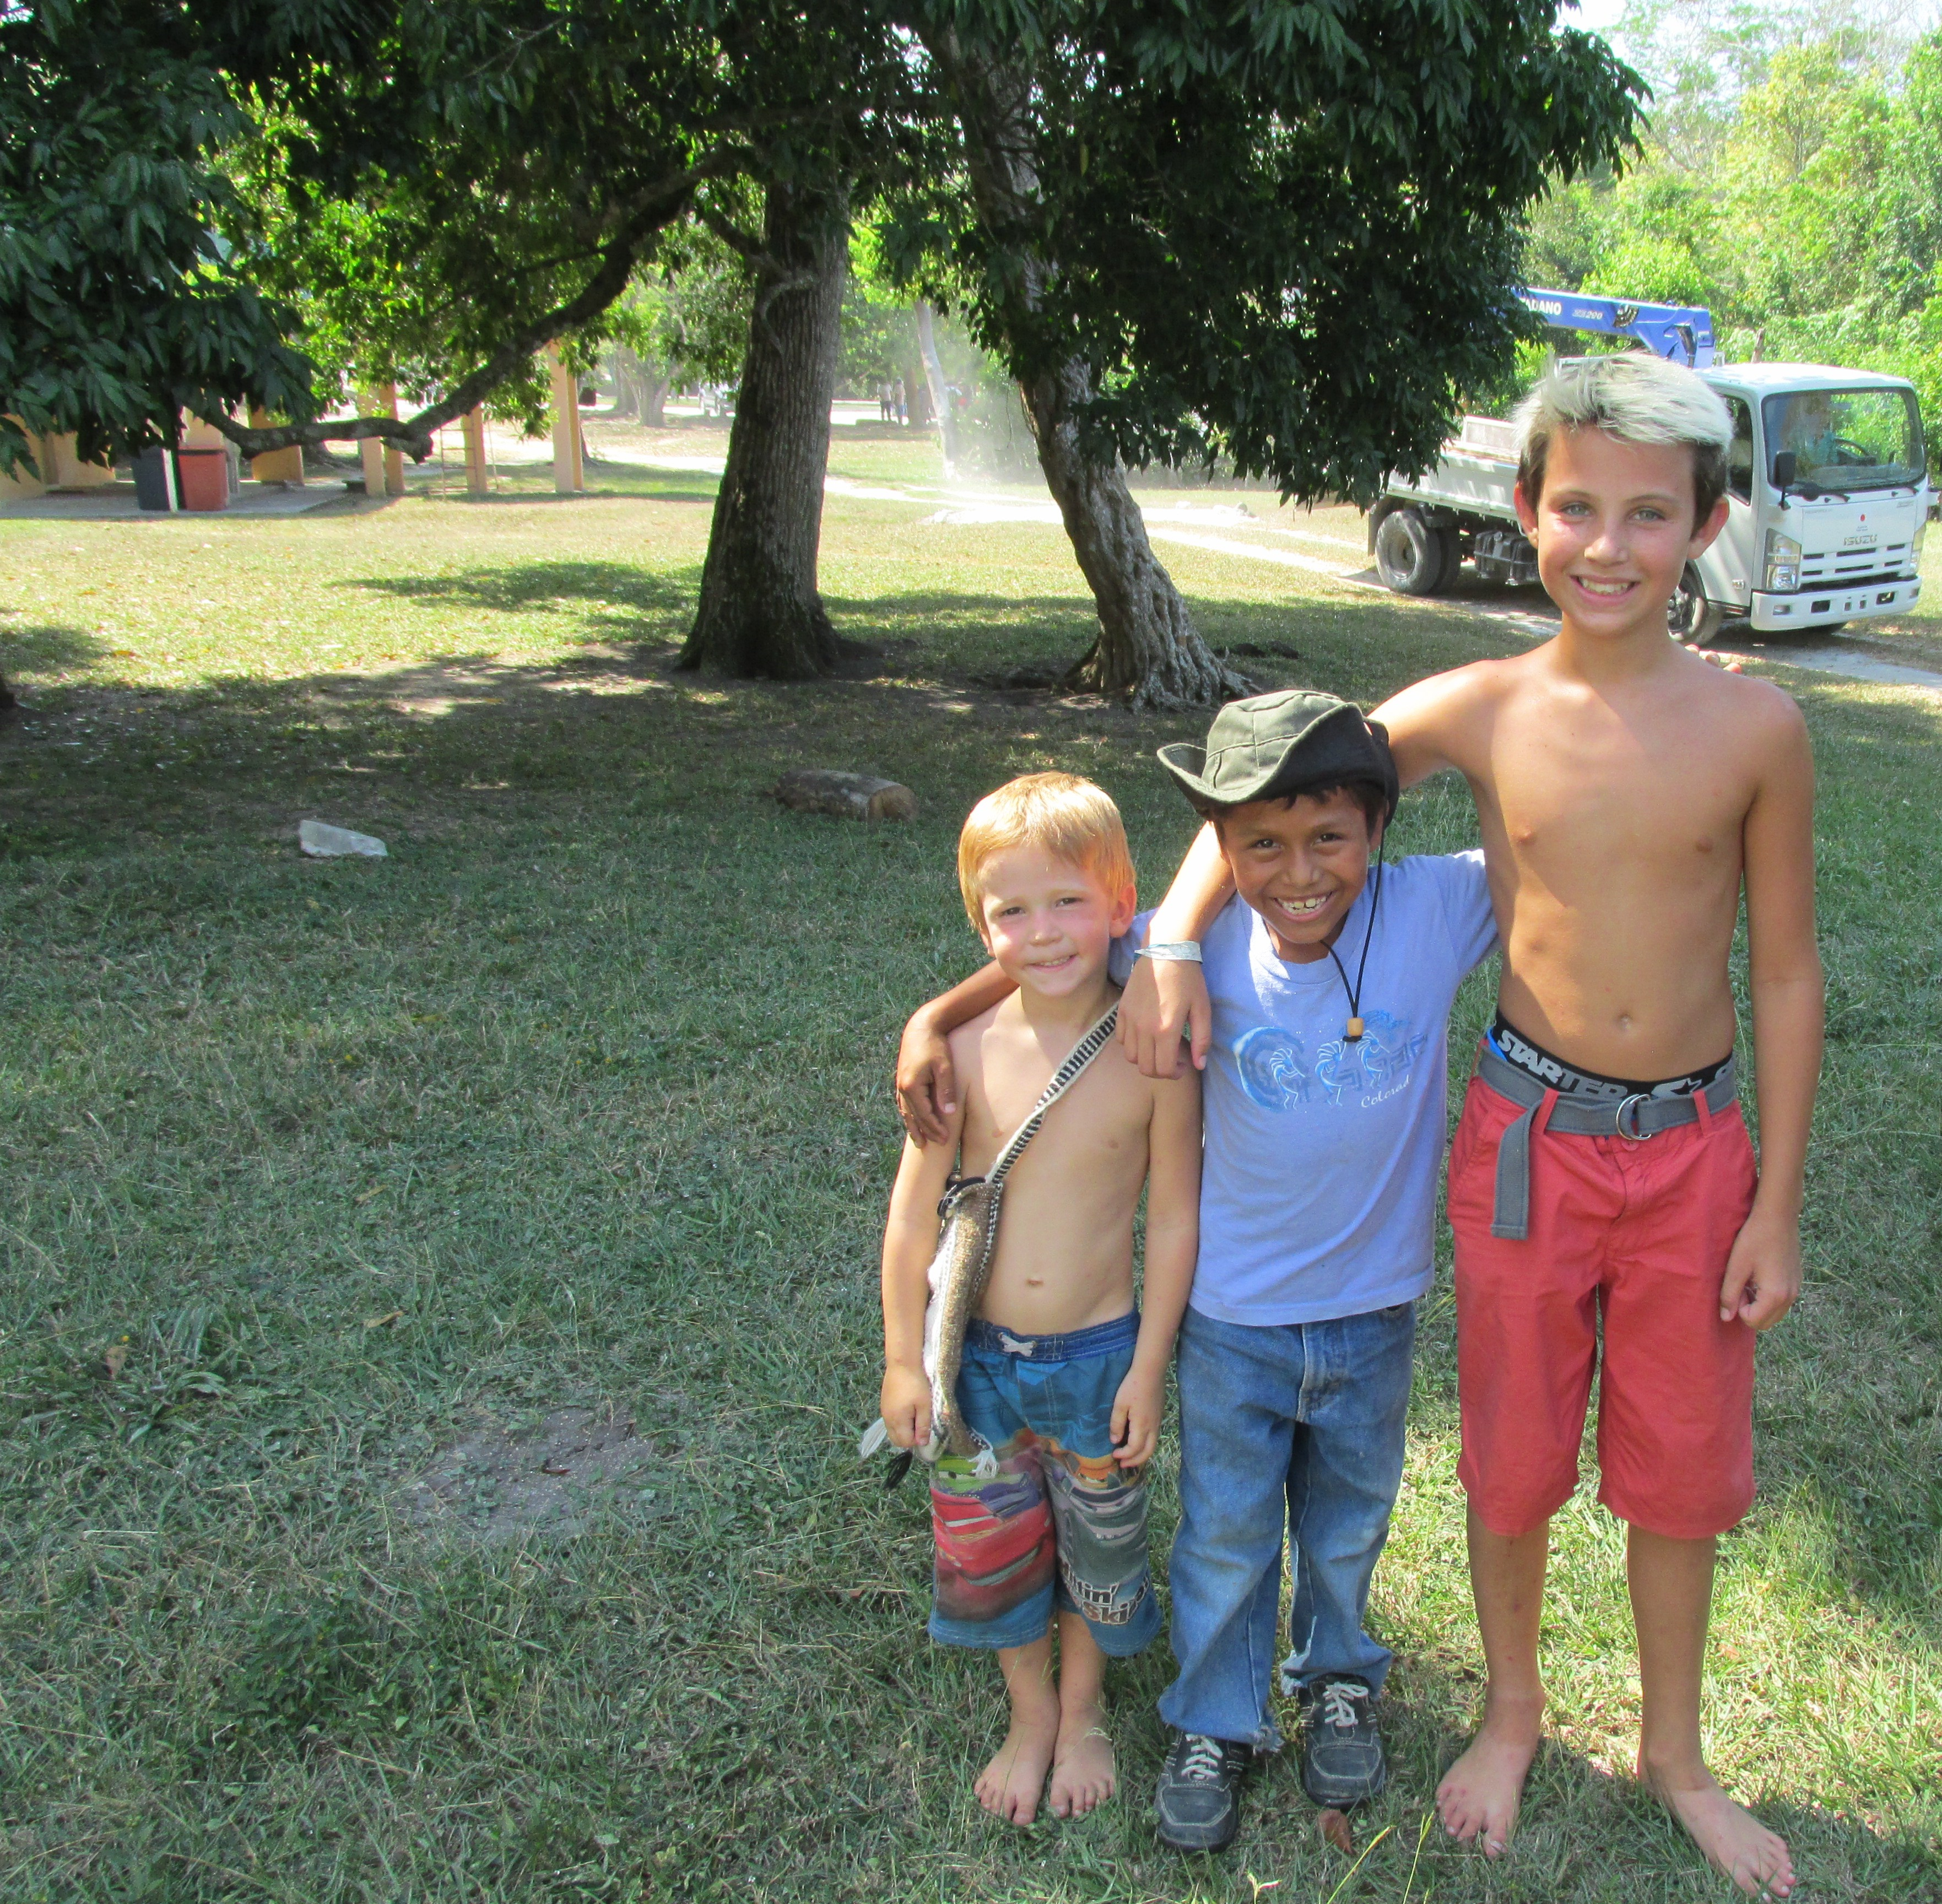 Castle (4), cute Guatemalan boy (9), Noah (12) at Tikal.  This boys mama made yummy banana bread - we bought about 12 mini loaves between our two families!